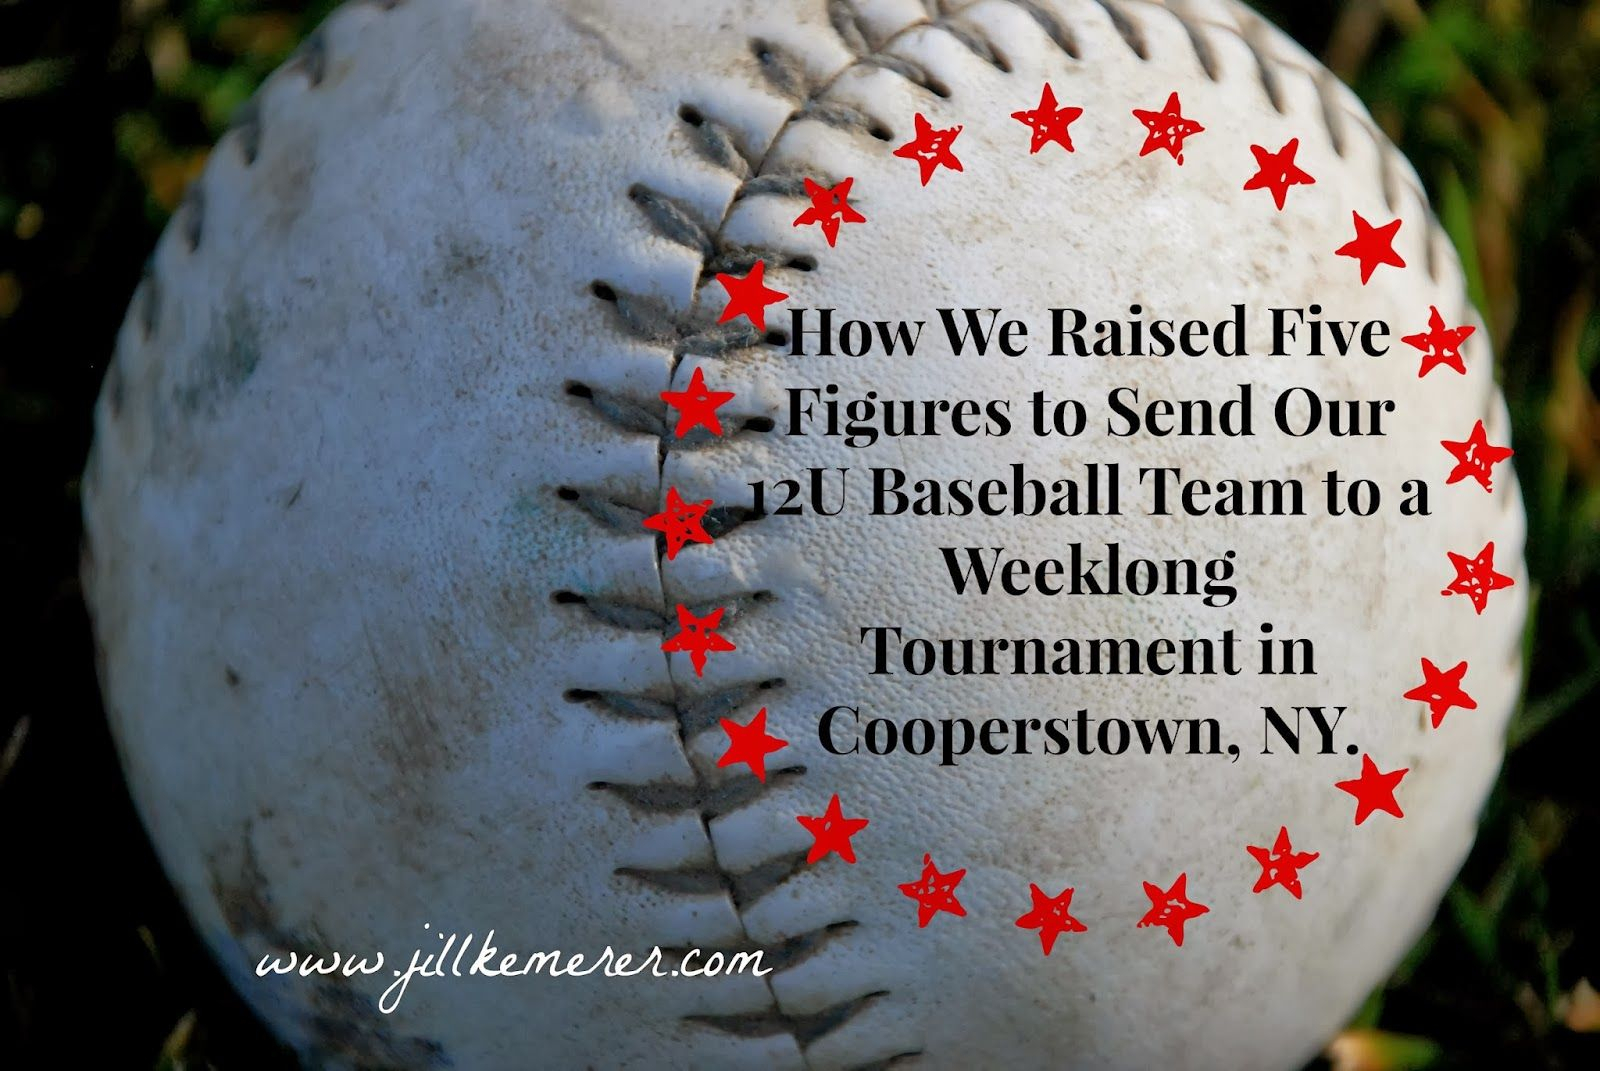 10 Beautiful Best Fundraising Ideas For Youth Sports Teams fundraising methods for youth sports teams jill kemerer my blog 3